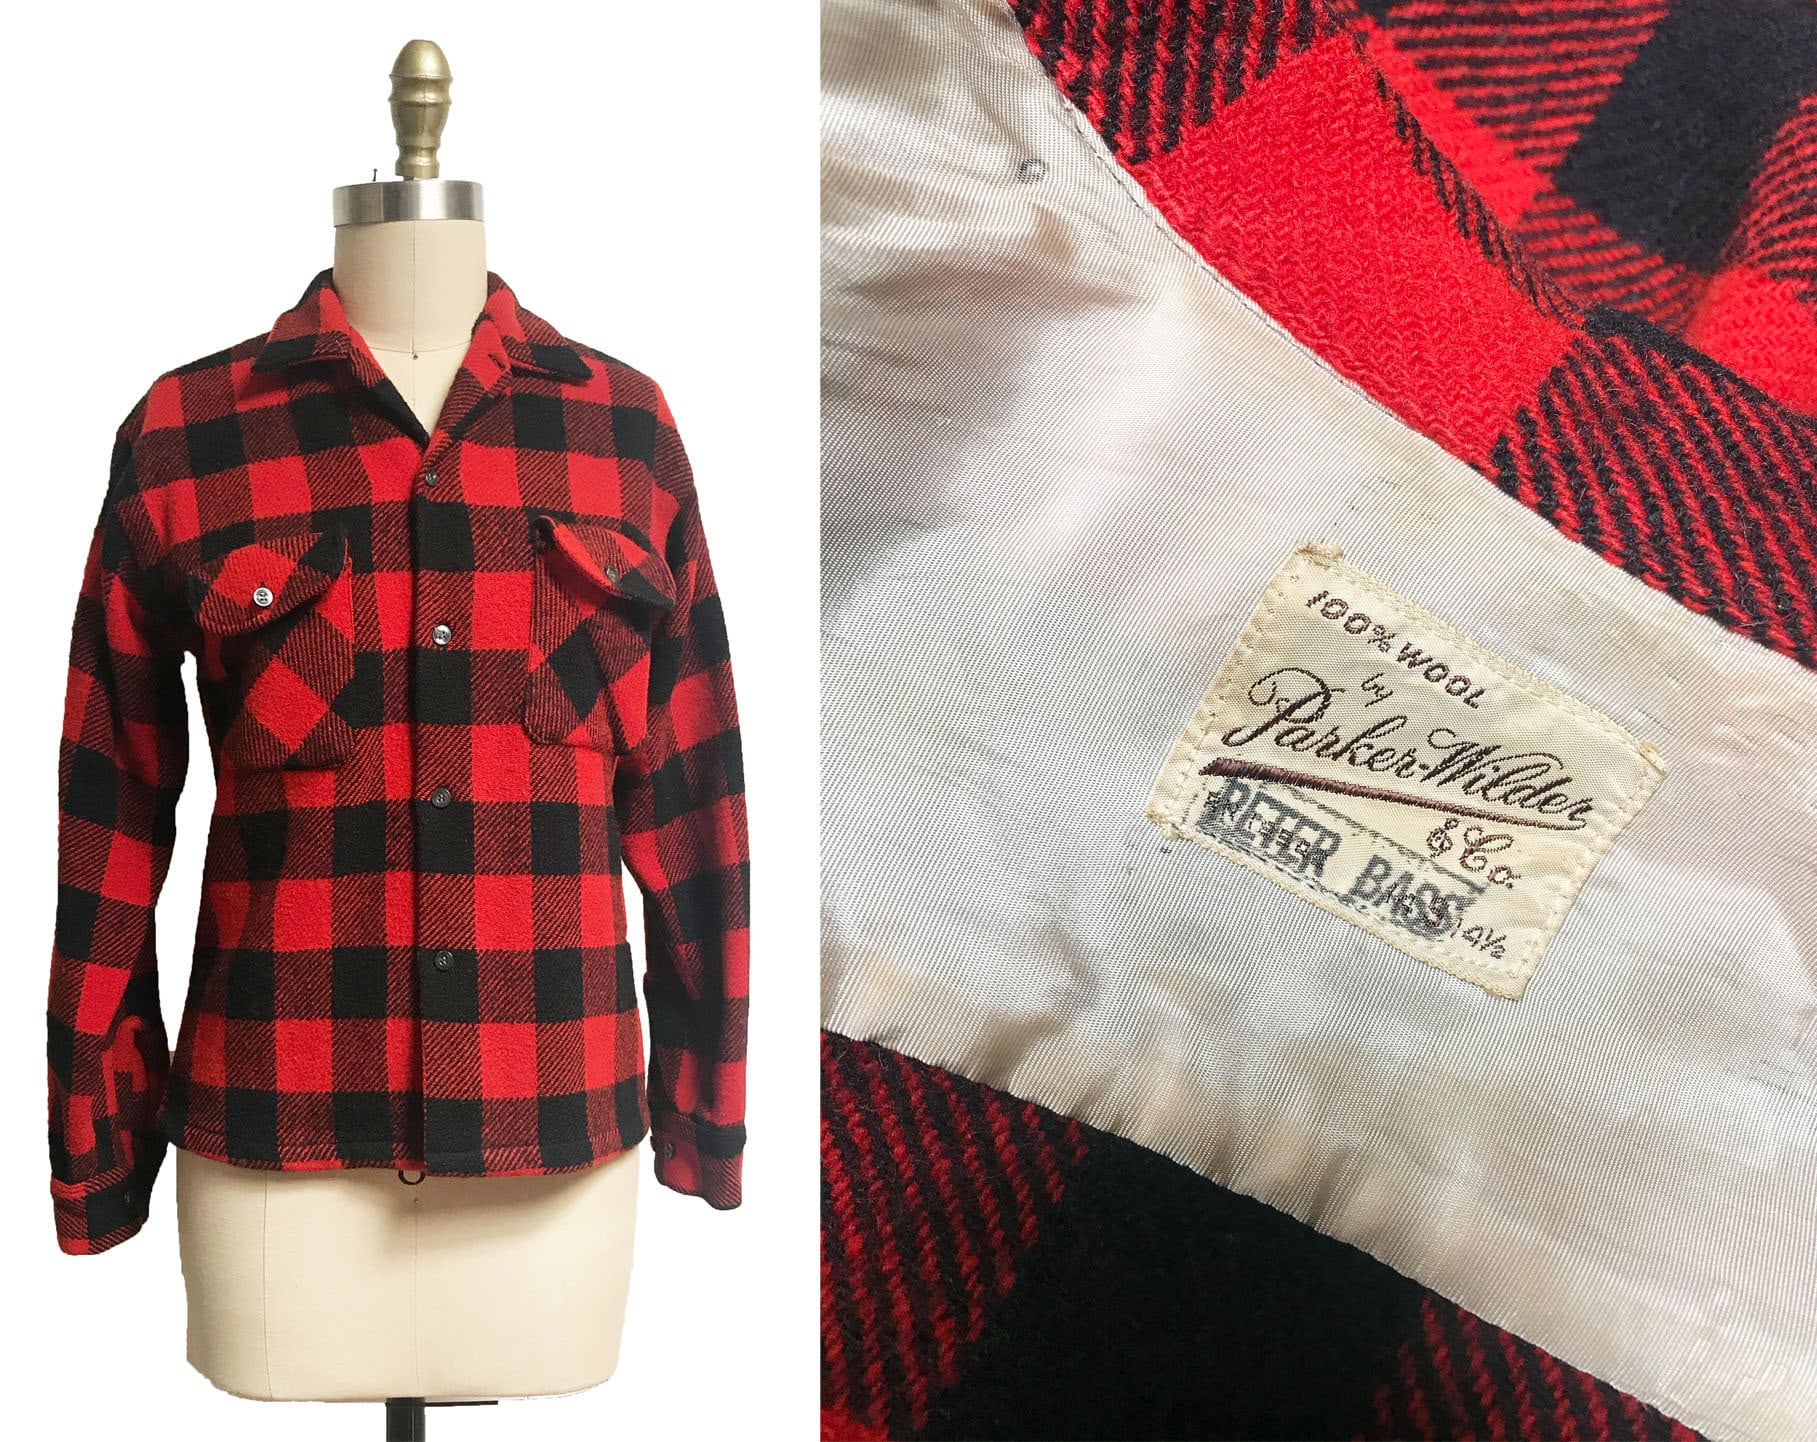 1950s Men's Ties, Bow Ties – Vintage, Skinny, Knit Vintage 1940S 1950S Plaid Button Up - Red Black Buffalo Mens Womens Shirt Small $65.00 AT vintagedancer.com